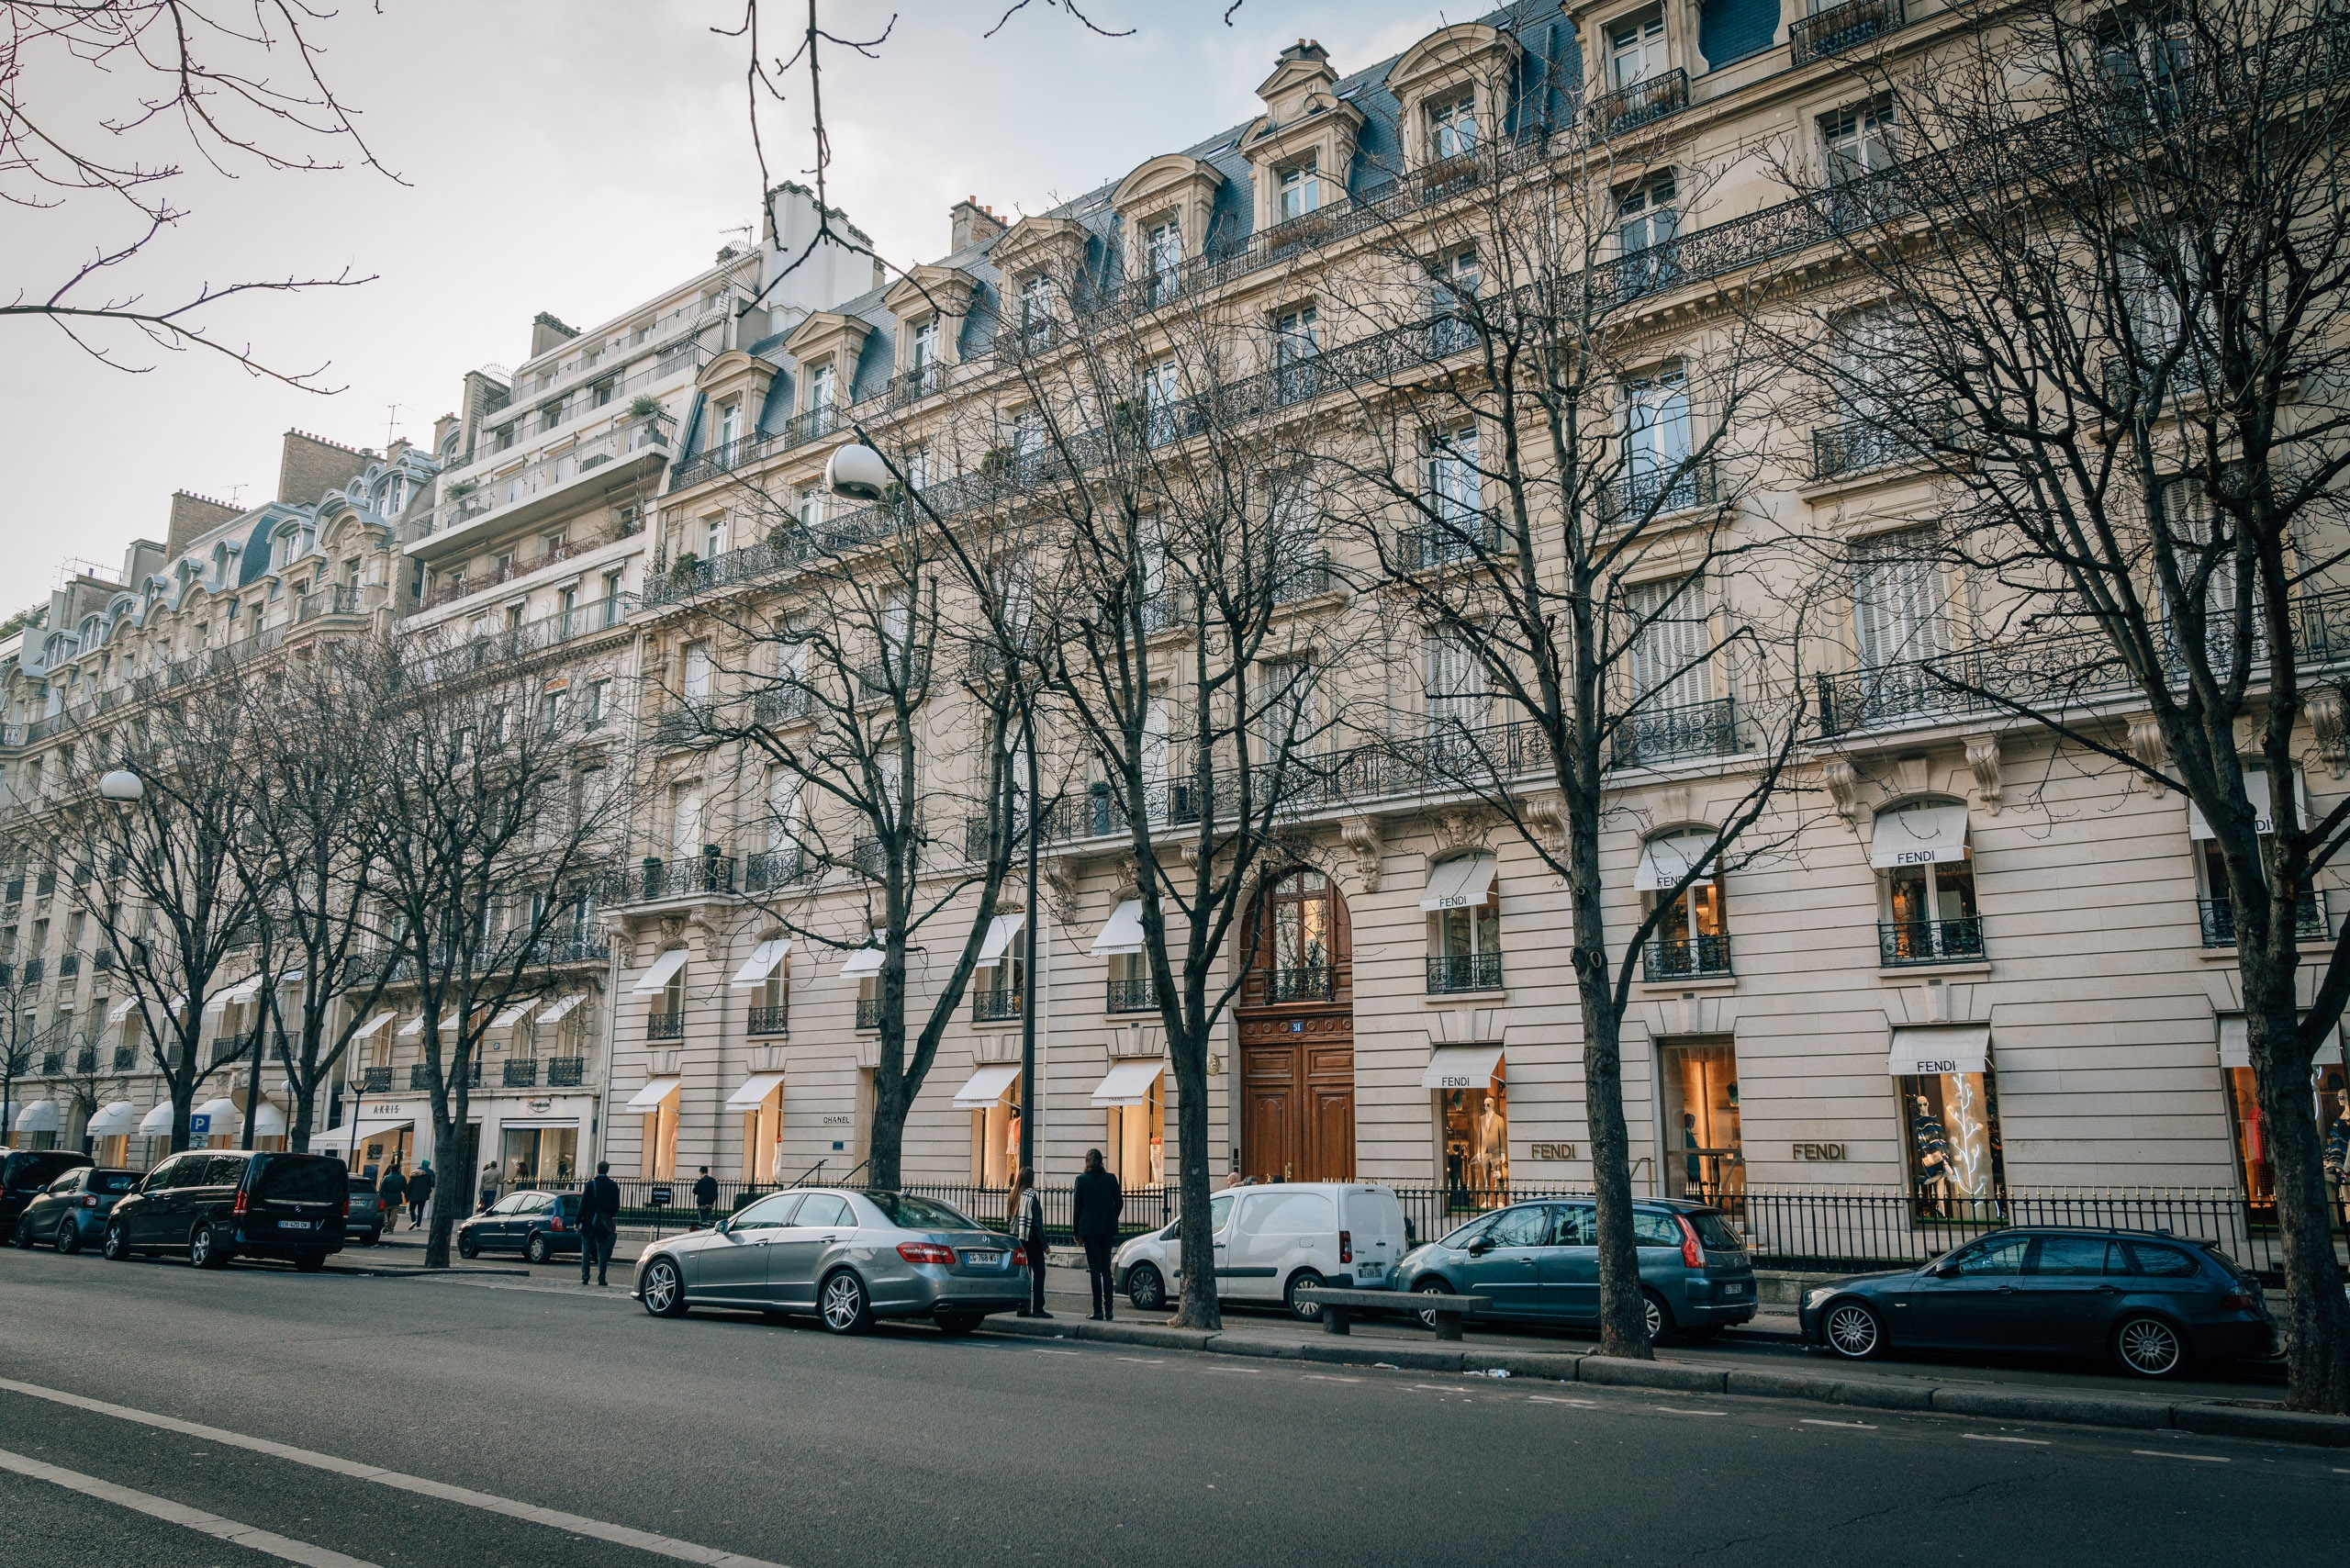 The Streets of Paris 3